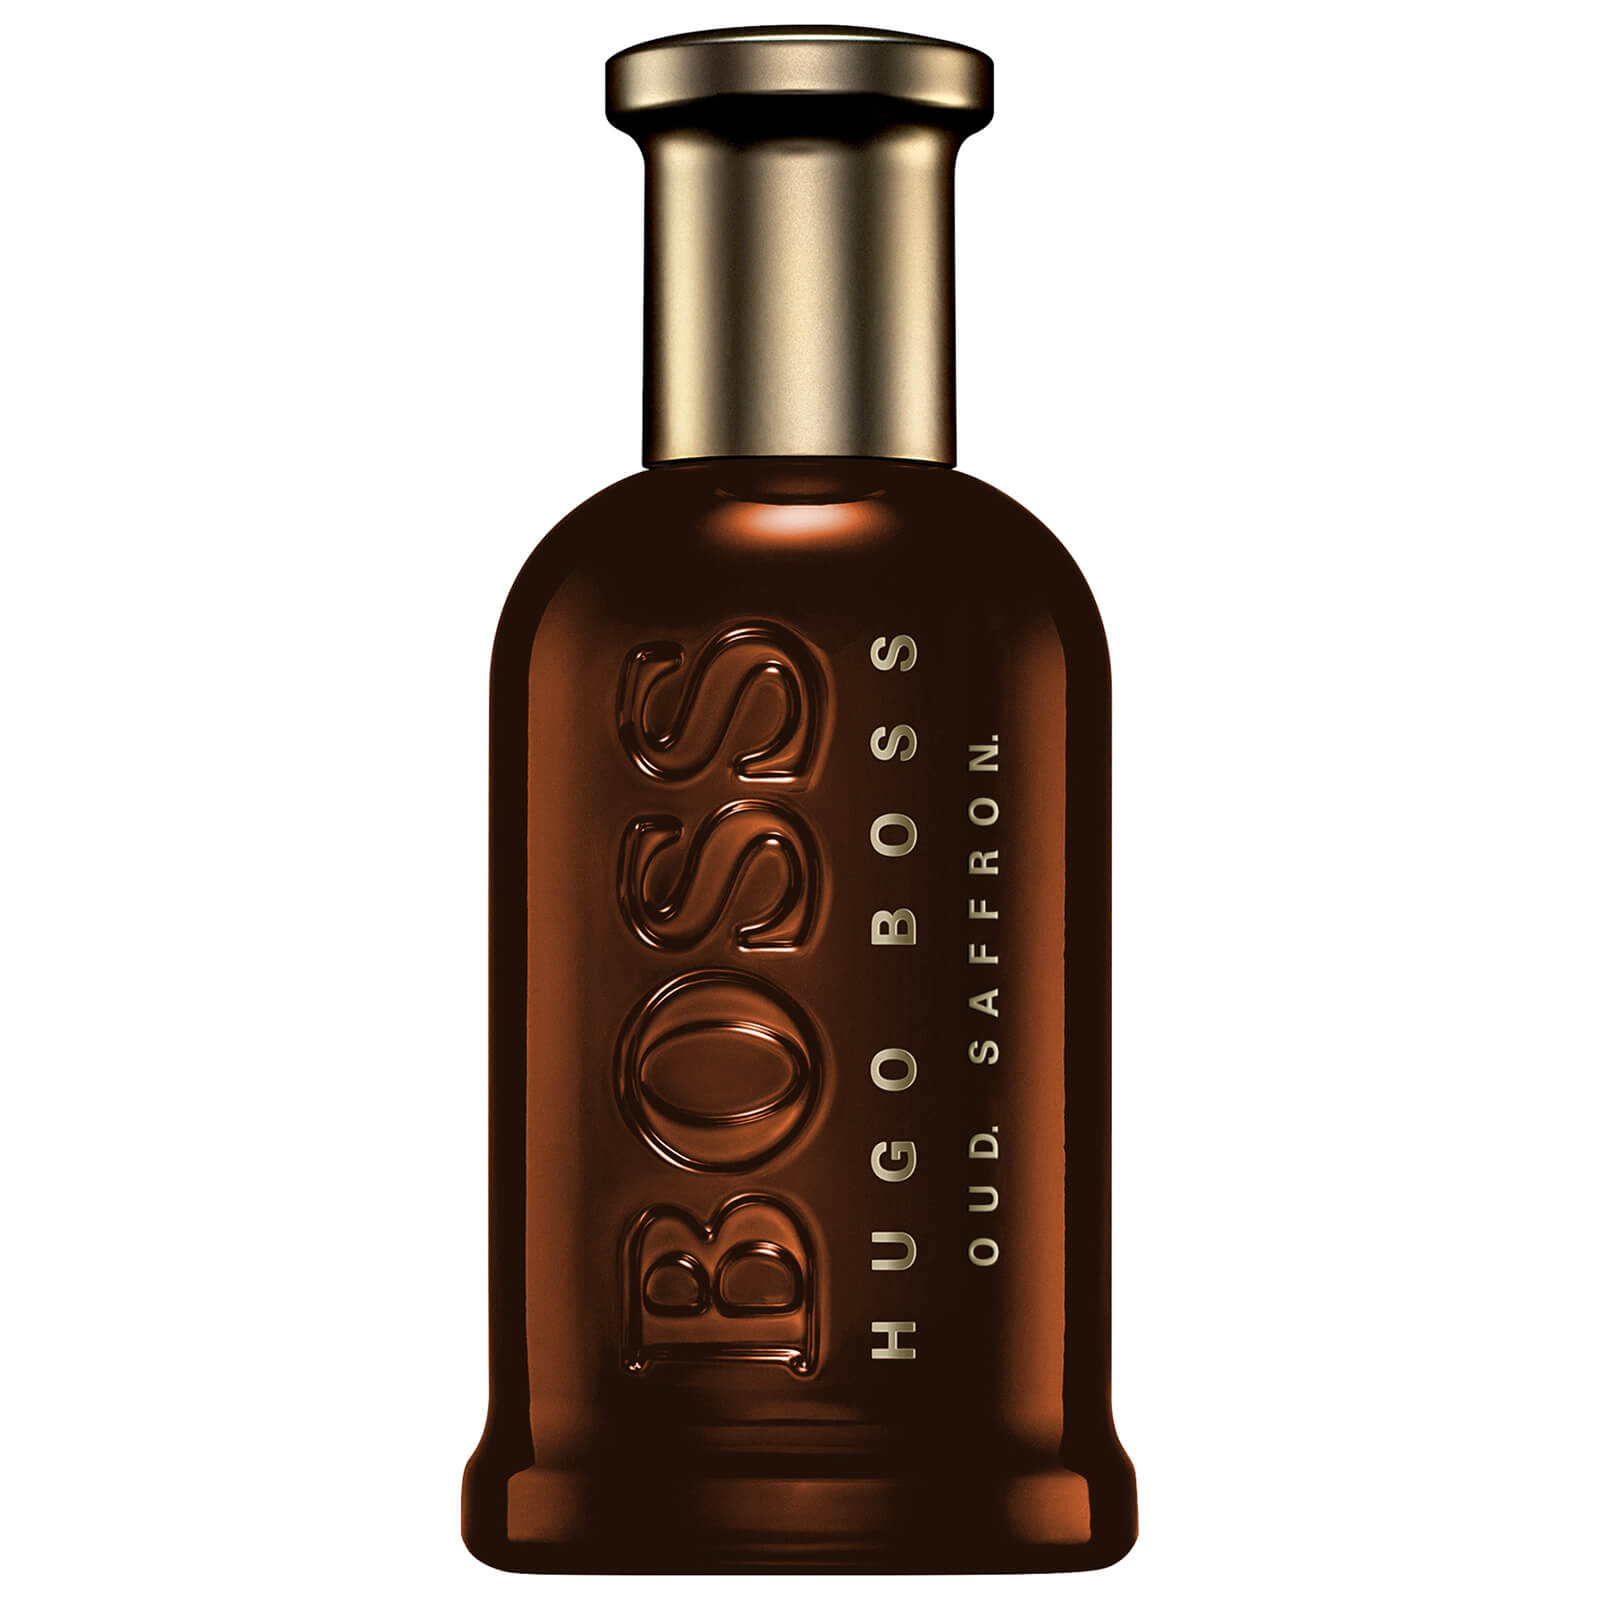 dostępność w Wielkiej Brytanii gorący produkt przejść do trybu online HUGO Boss BOSS Bottled OUD Saffron Limited Edition Eau de Toilette 100ml